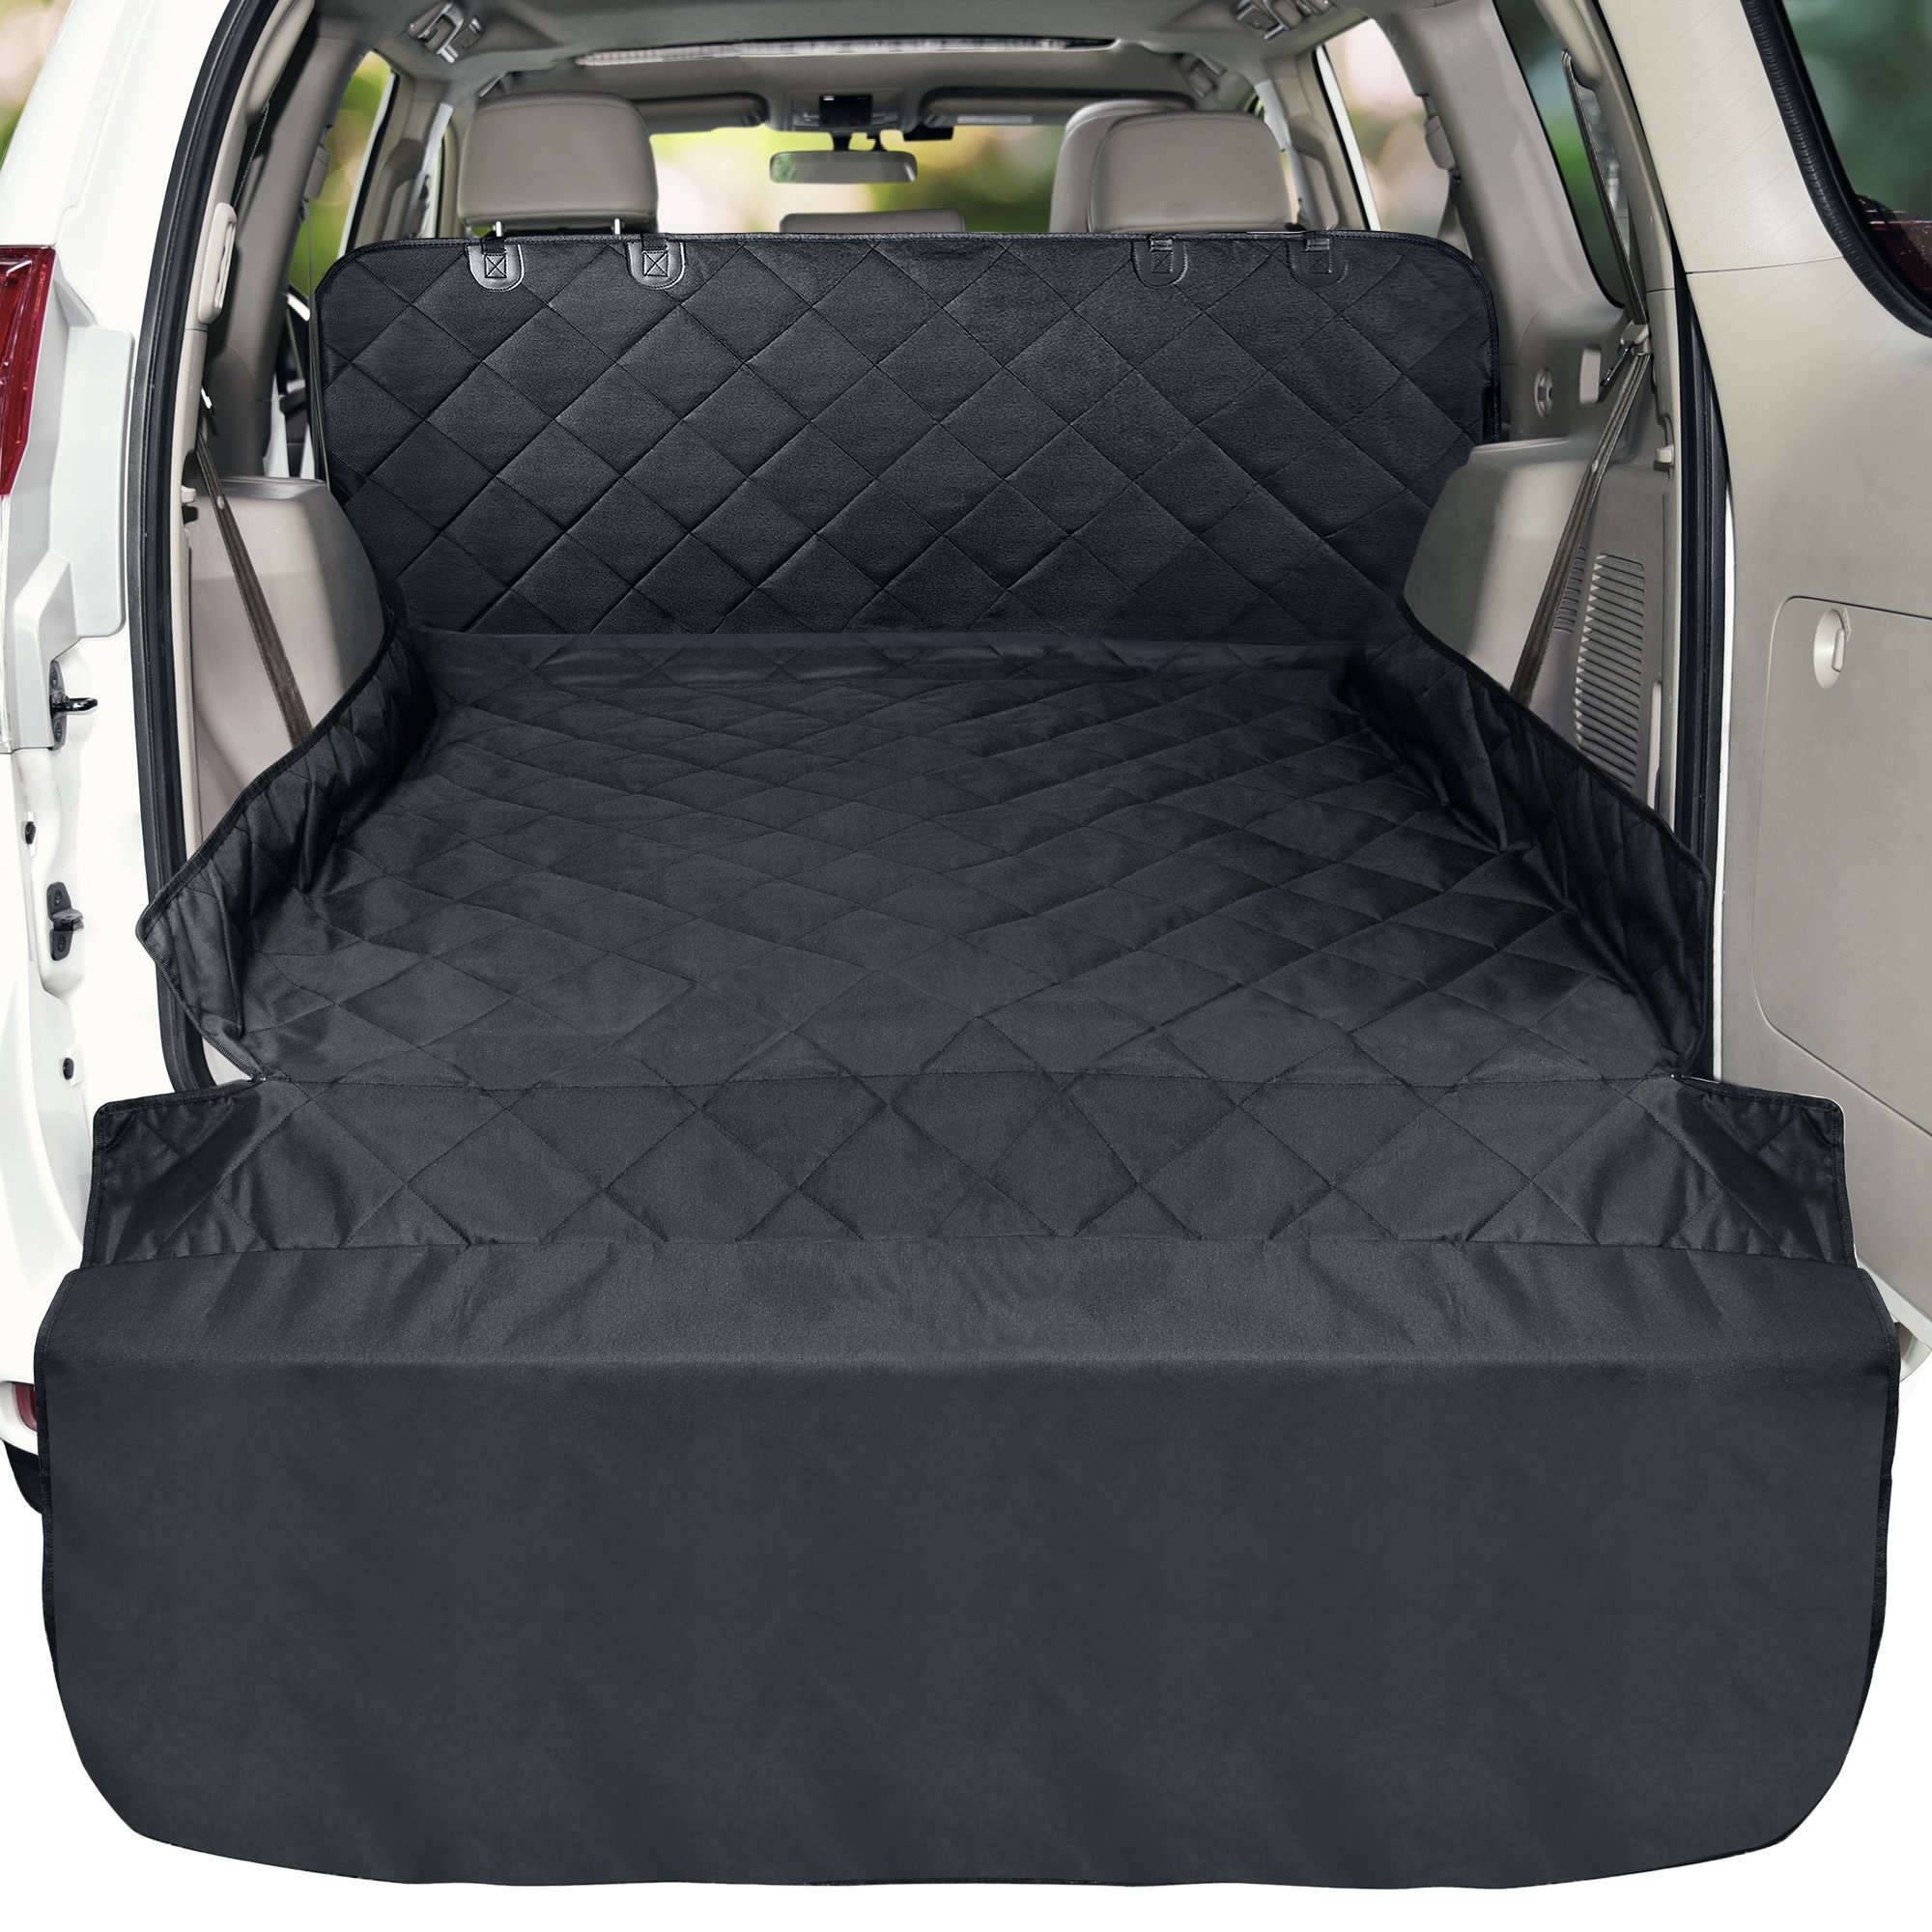 Veckle Cargo Liner, Large SUV Cargo Liner for Dogs Waterproof Dog Seat Cover SUV Cargo Cover Nonslip Mat Scratchproof Pet Cargo Protector for SUVs Sedans Vans by Veckle